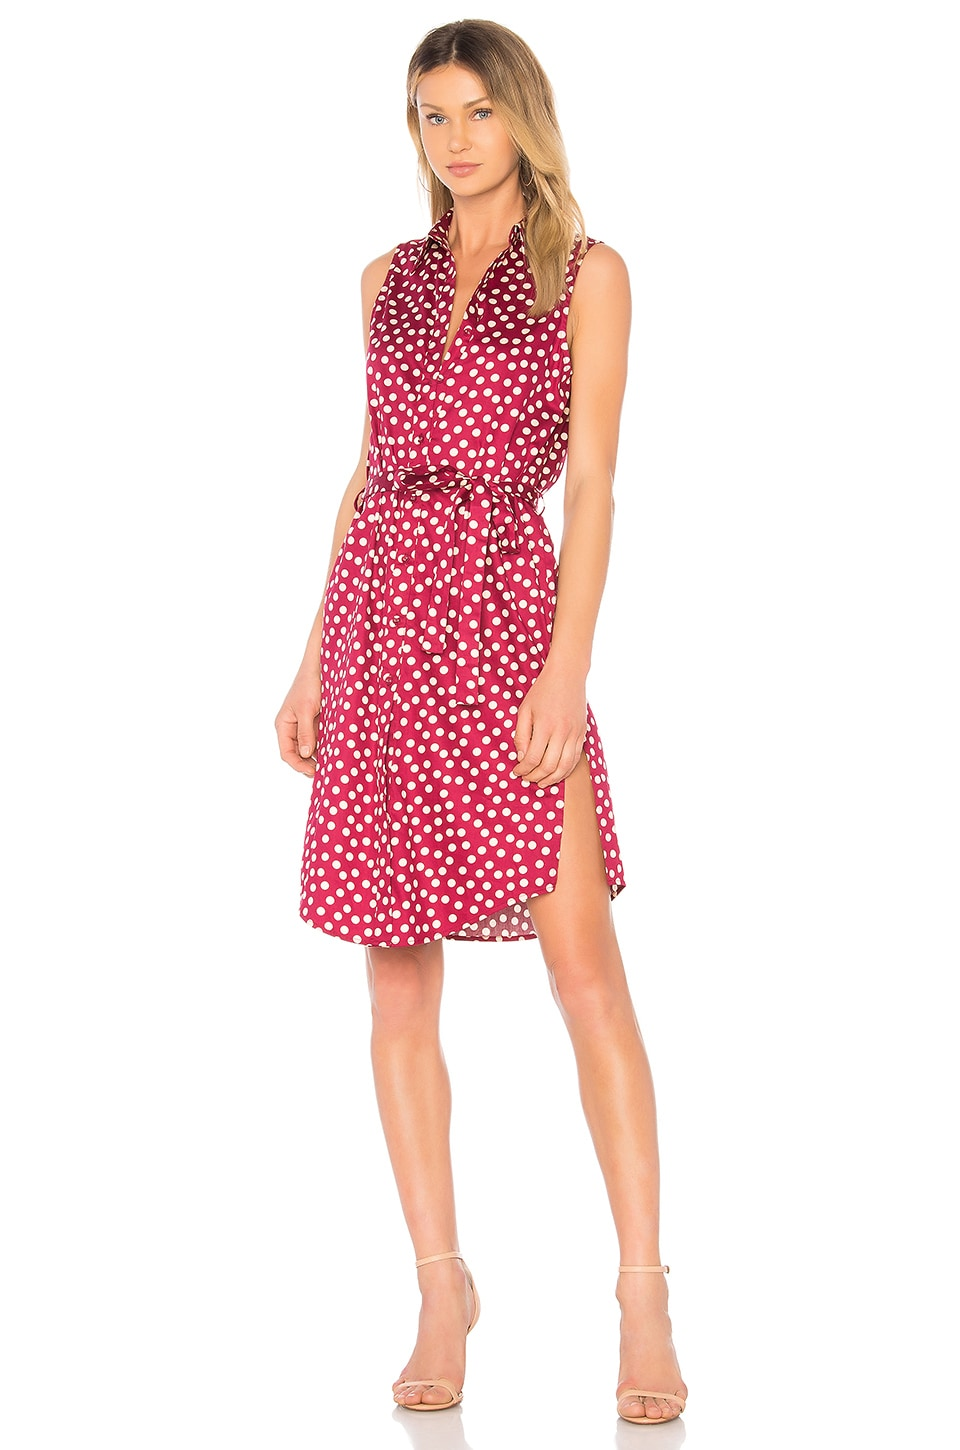 L'Academie The Sleeveless Midi Dress in Red Dot